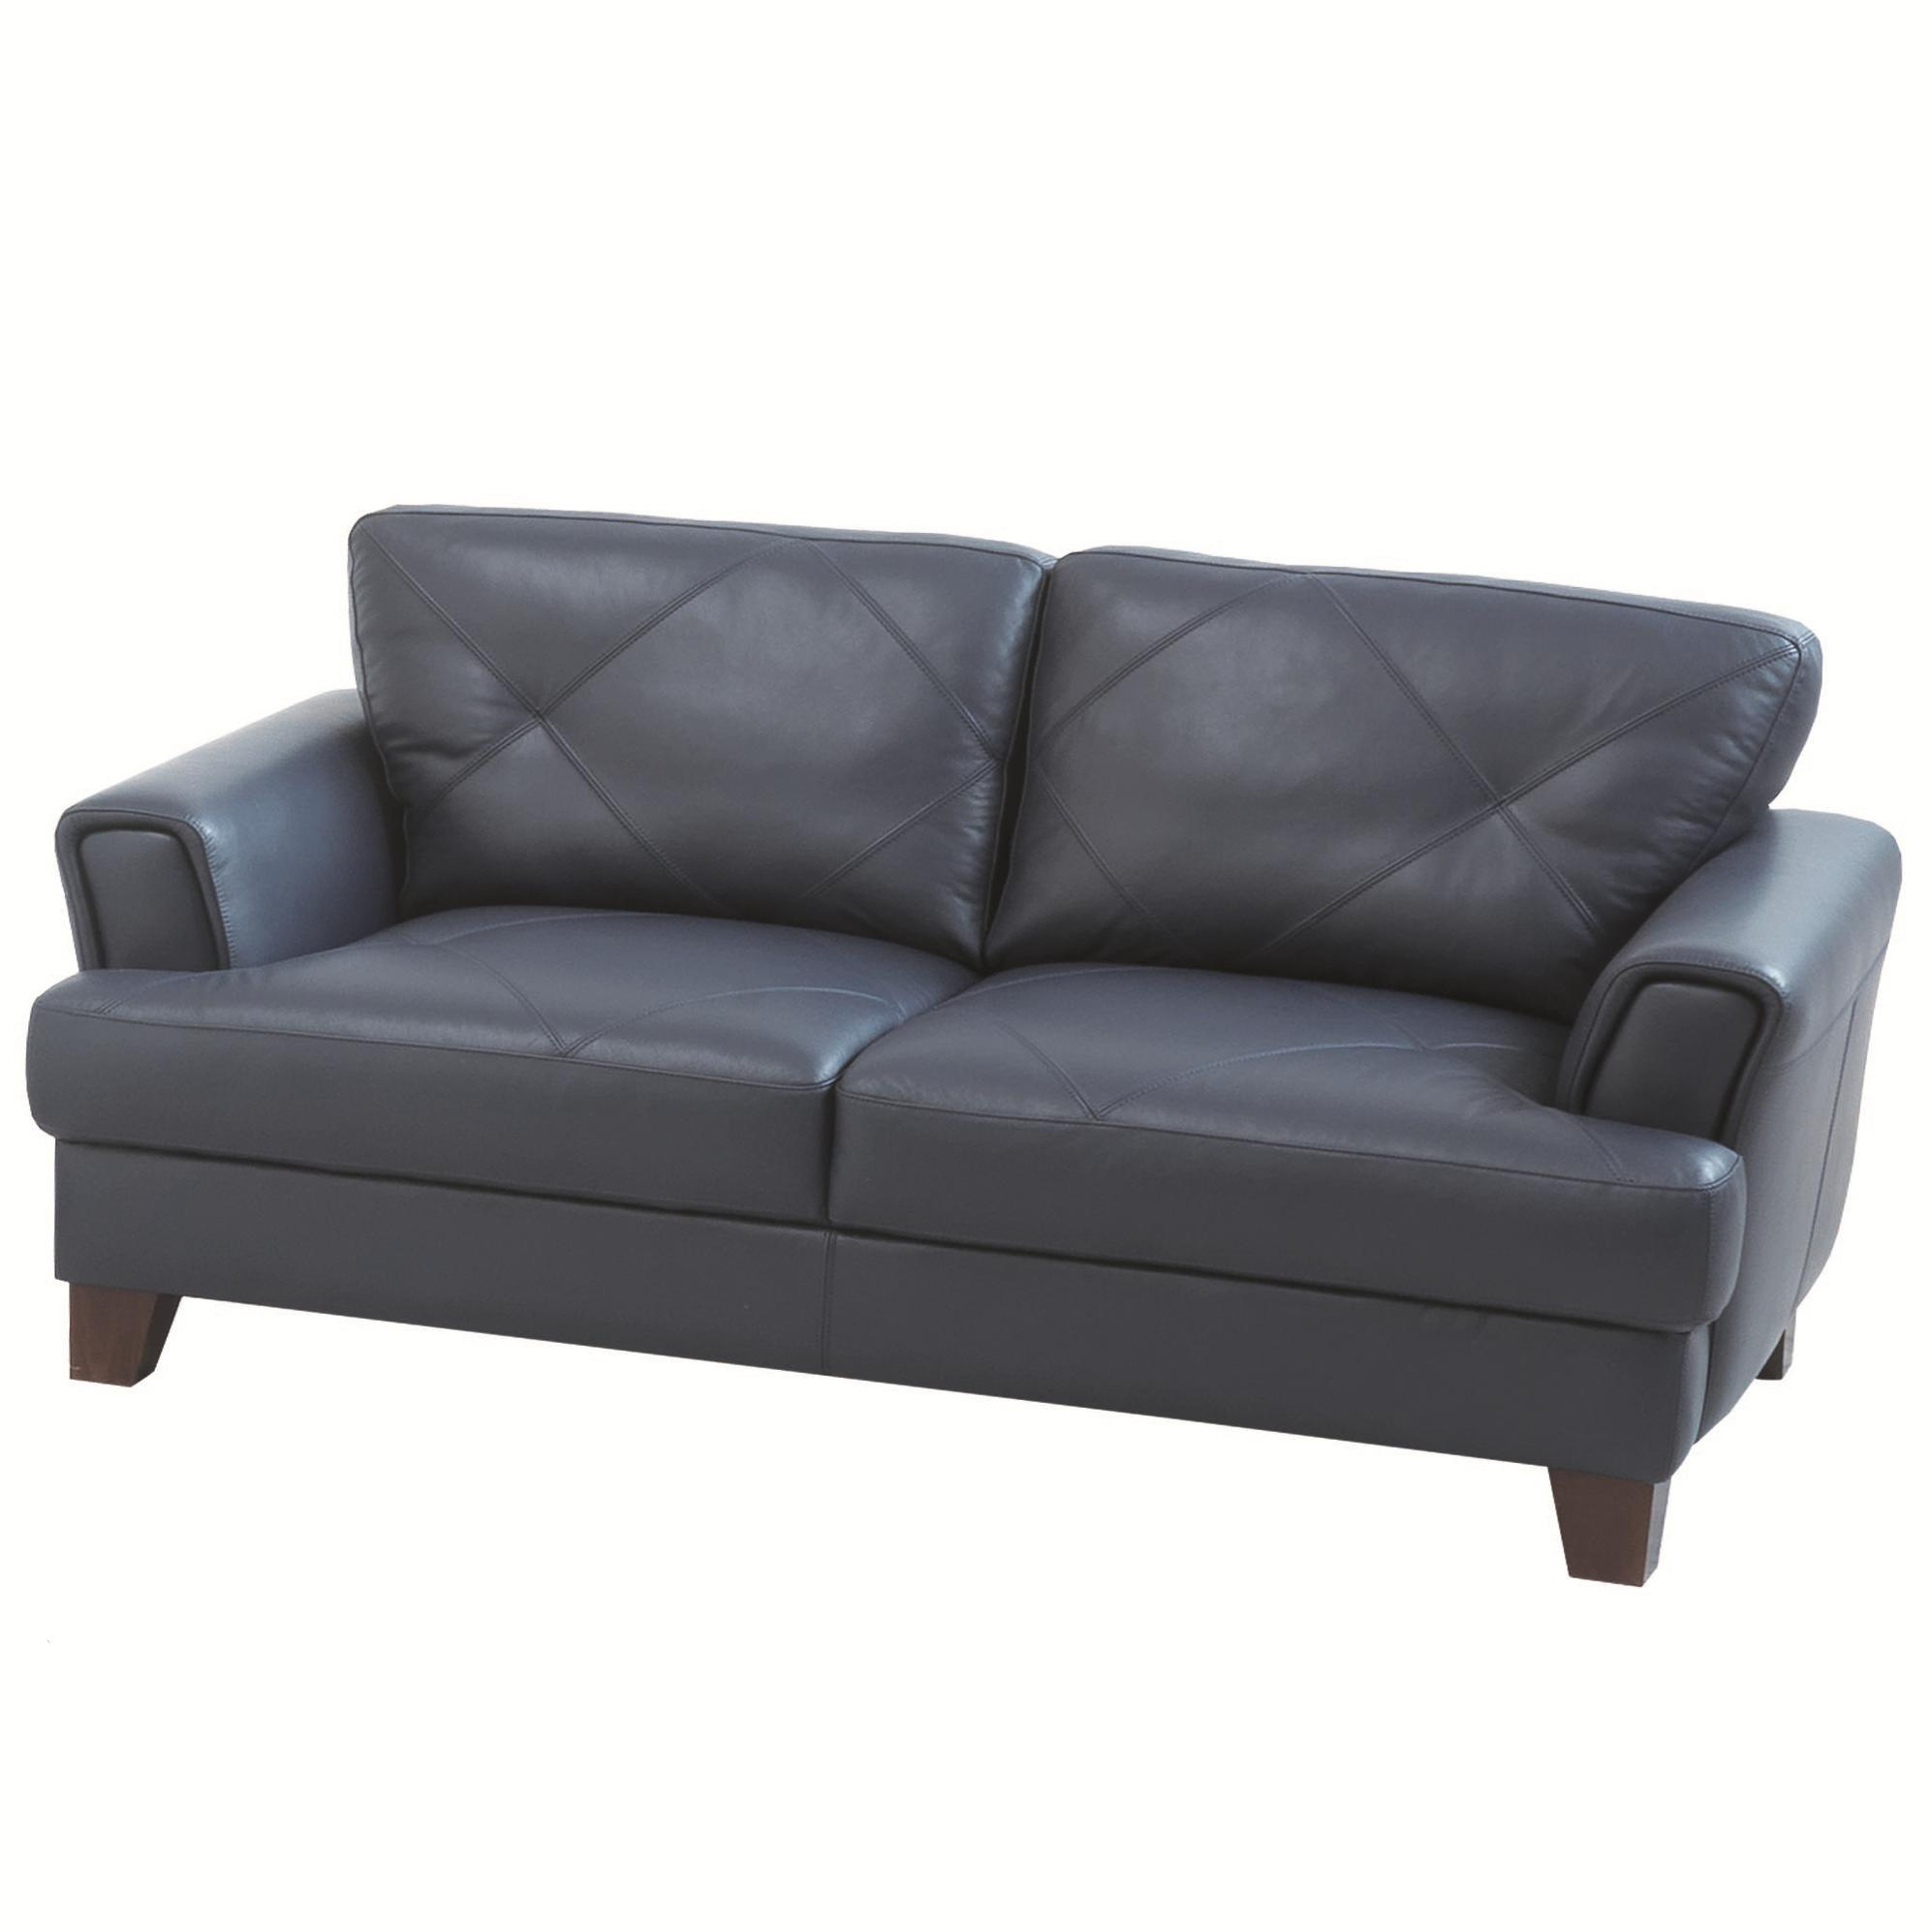 Chateau D'Ax C486 ONLY AVAILABLE IN THREE COLORS!!! - Item Number: C486 DA